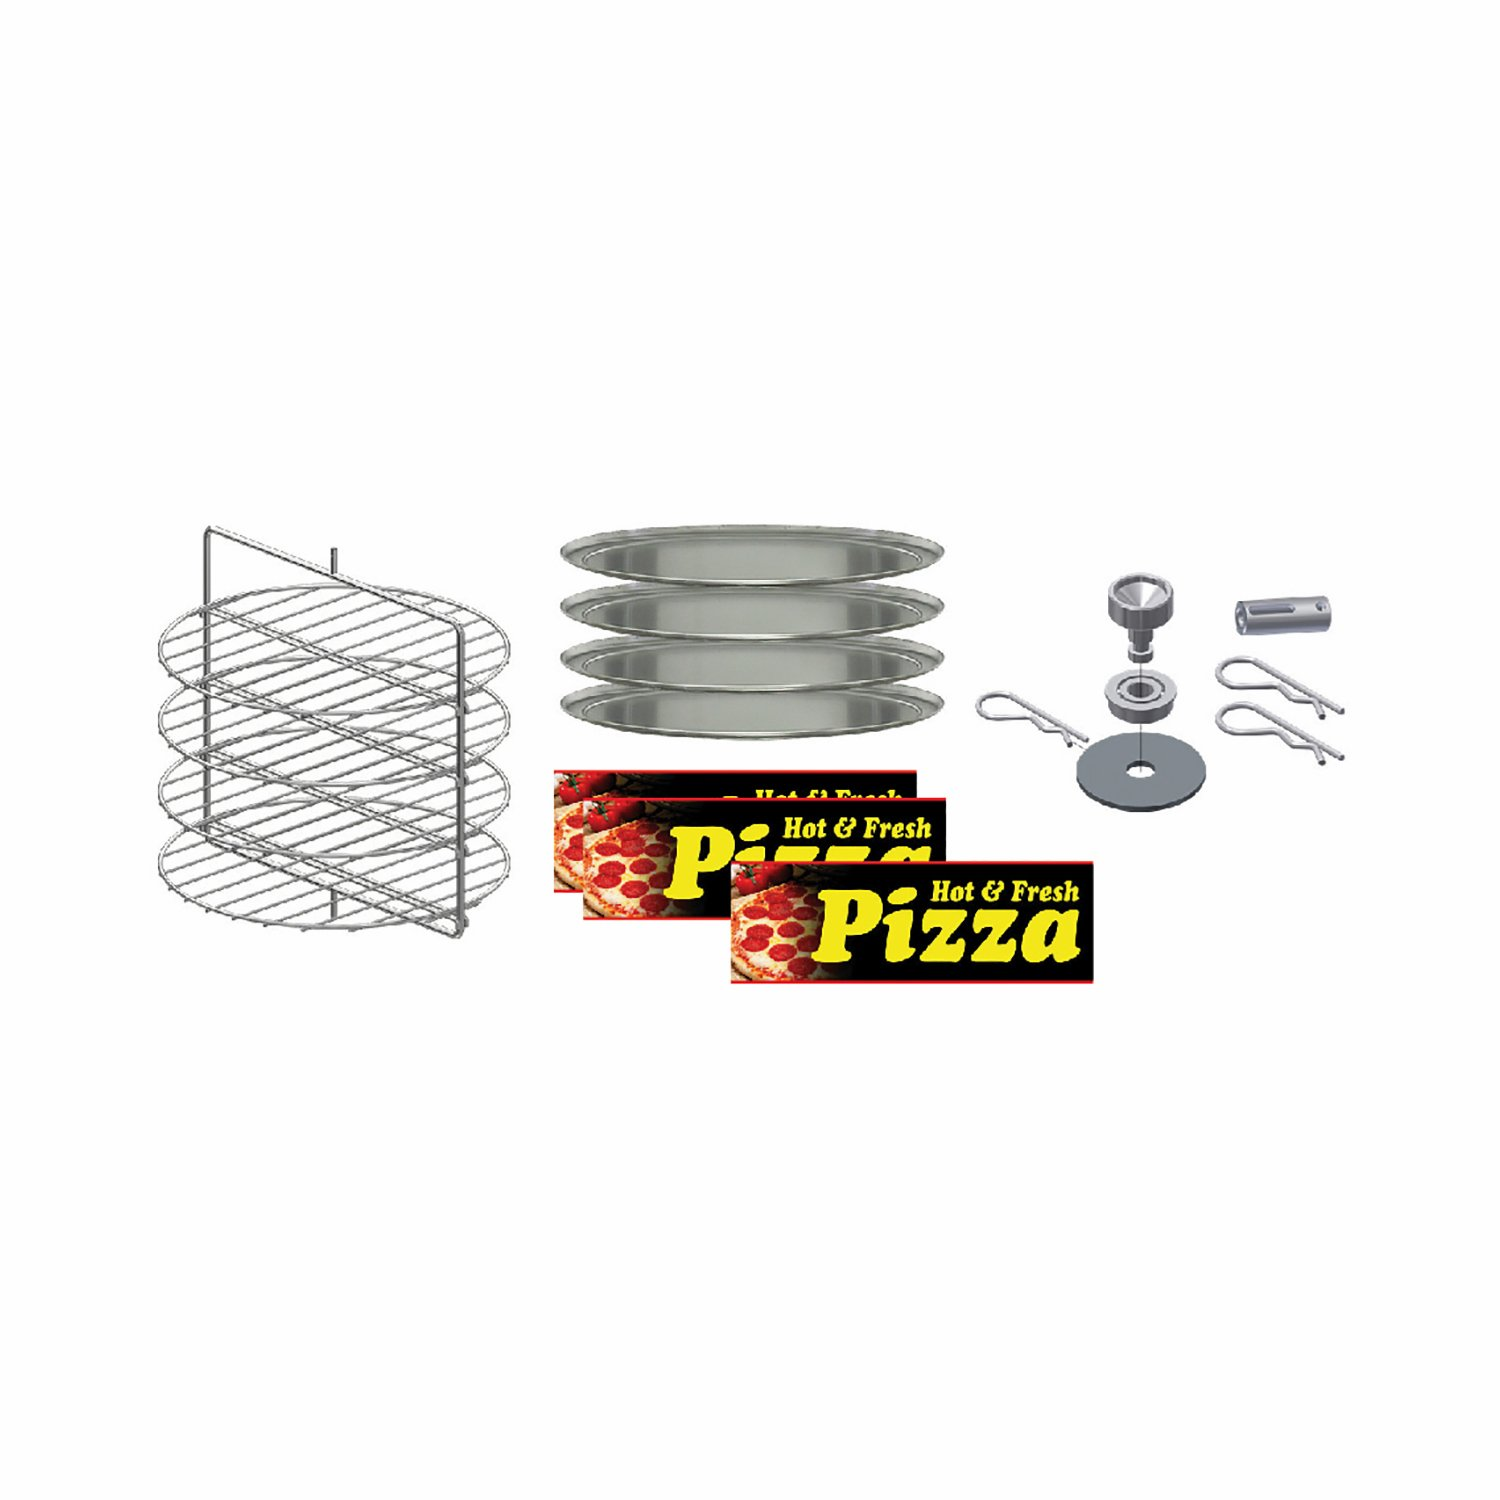 GOLD MEDAL LARGE PIZZA CABINET KIT MODEL: 5553-000 - Allen Associates